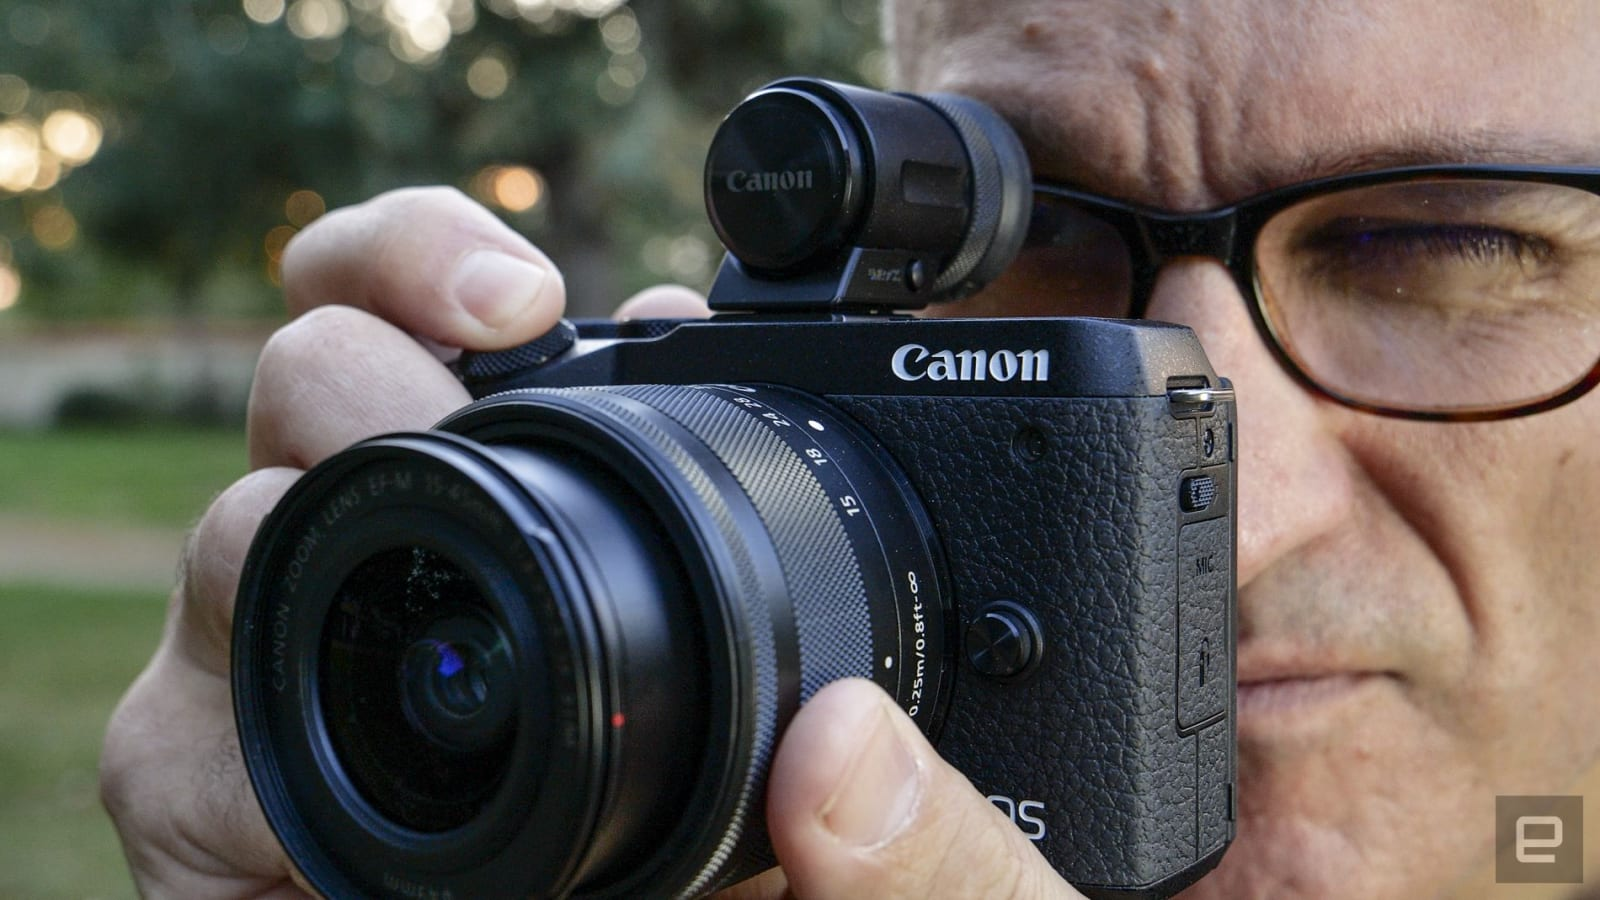 Canon EOS M6 Mark II mirrorless camera review